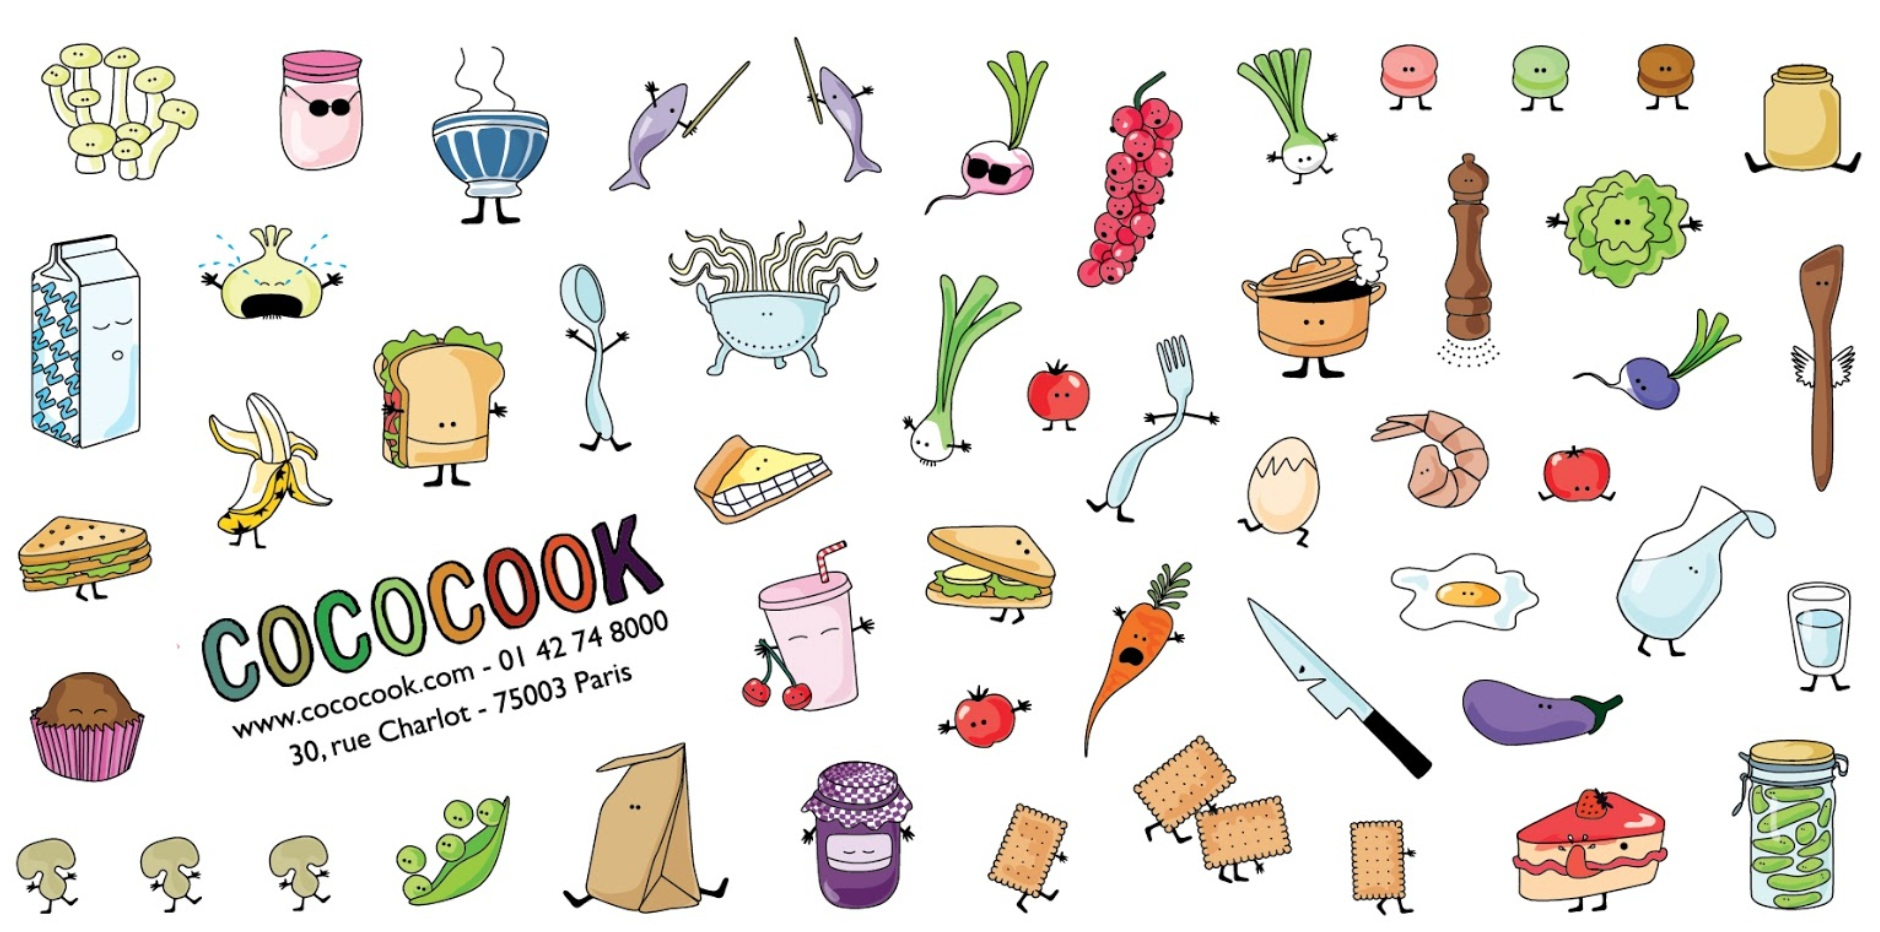 Comprehensive menu design for Parisian healthy, fast food chain Cococook. Concept, development and completion across the whole spectrum: drinks, snacks, main plates and desserts.